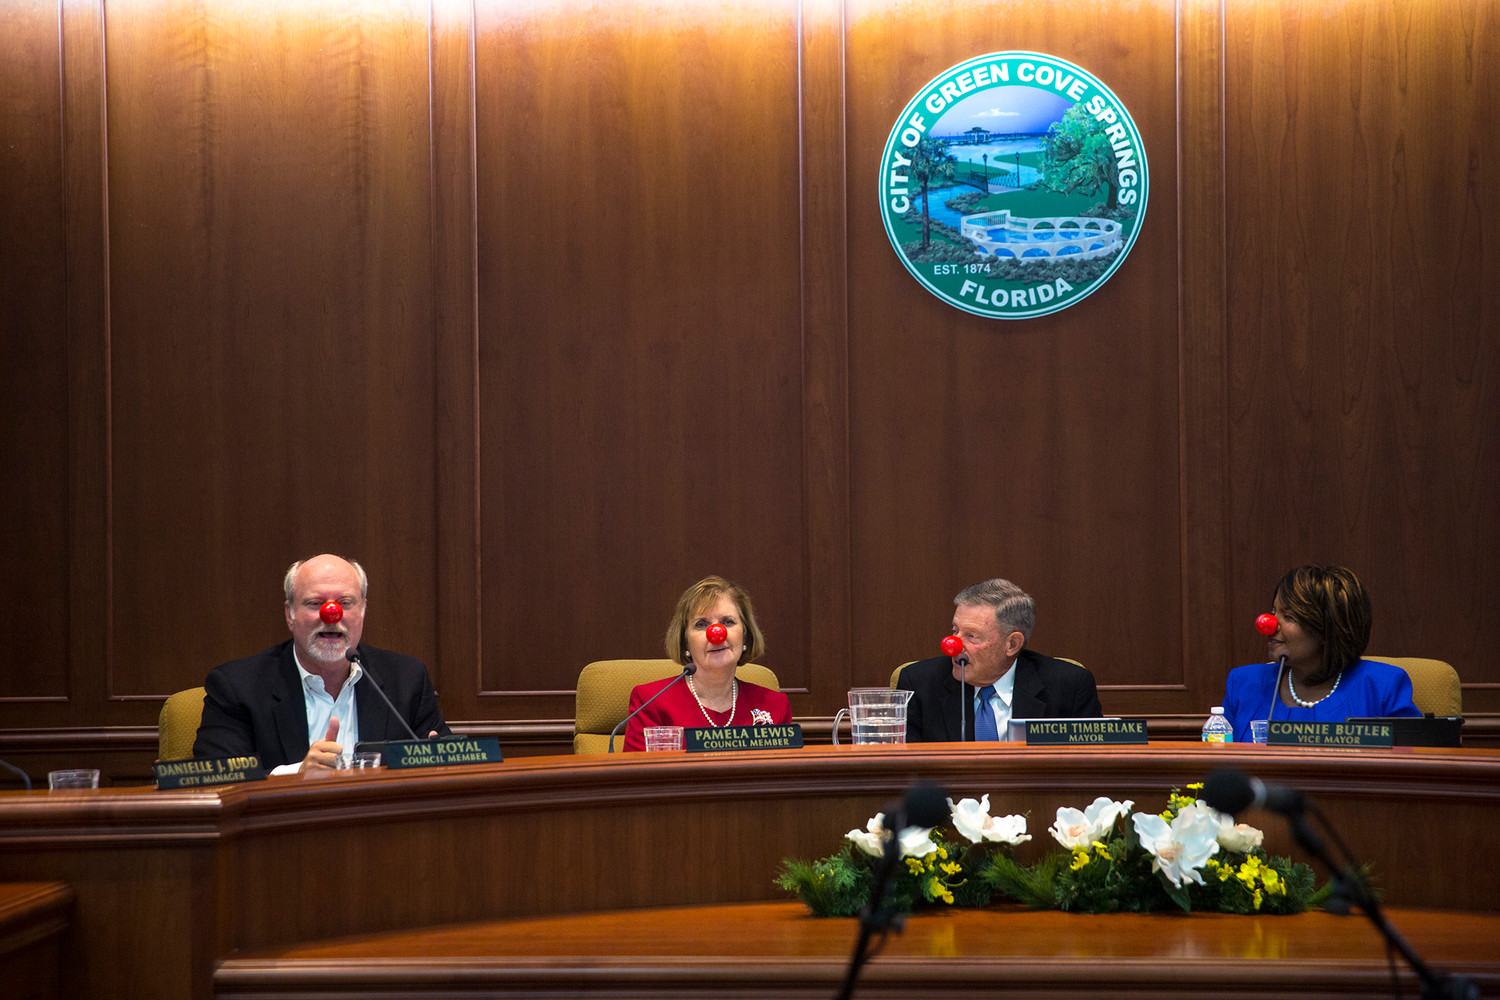 Green Cove Springs council members, from left, Van Royal, Pam Lewis, Mitch Timberlake, and Mayor Connie Butler wear red noses Tuesday evening passed out by Royal for Red Nose Day on May 24.